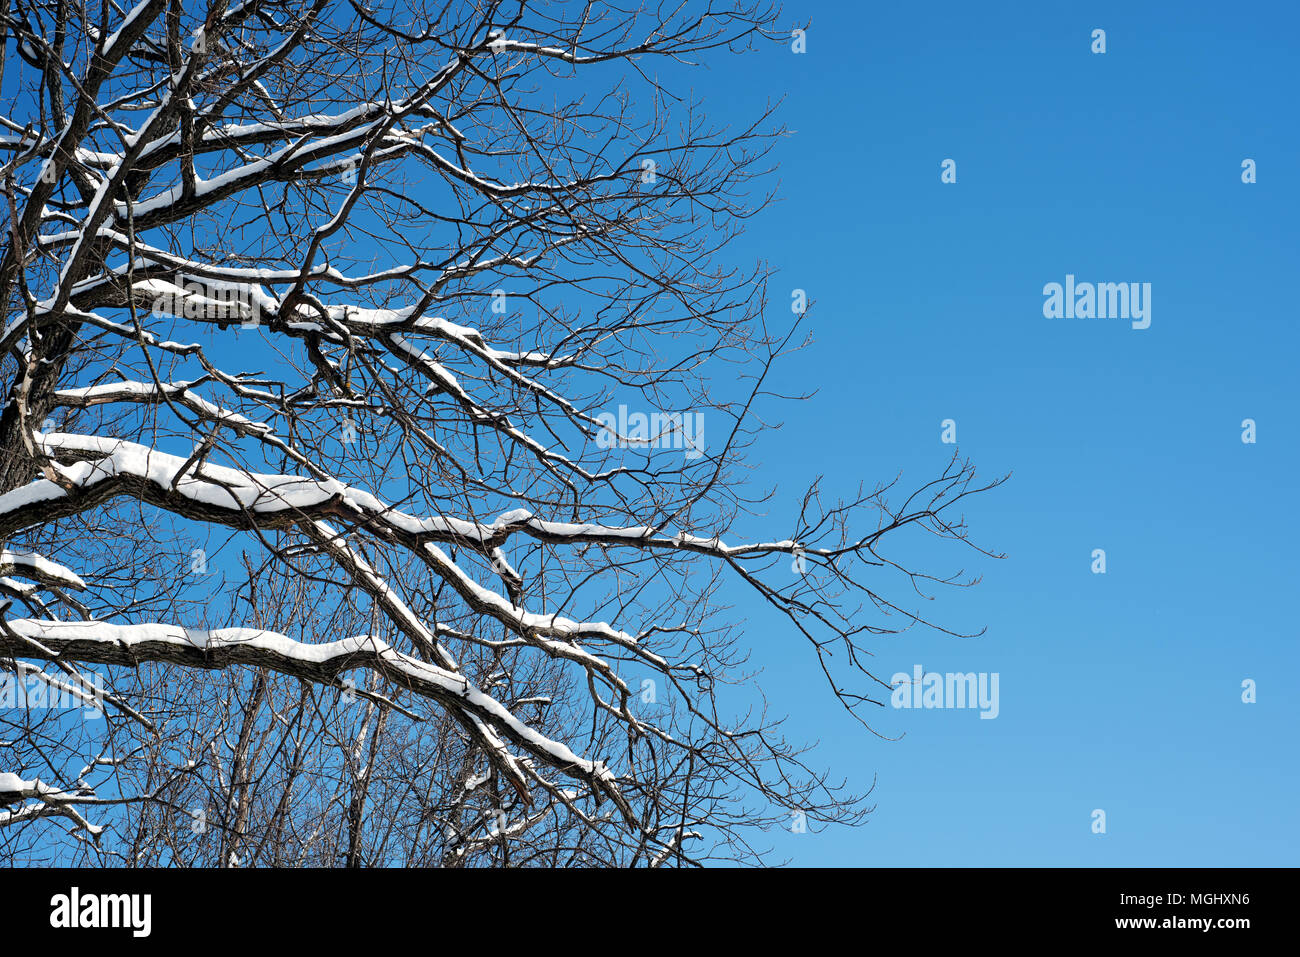 Leafless tree branches covered in fresh winter snow set against a blue sky in natural sunlight. Copyspace for winter woodland and nature themes design Stock Photo